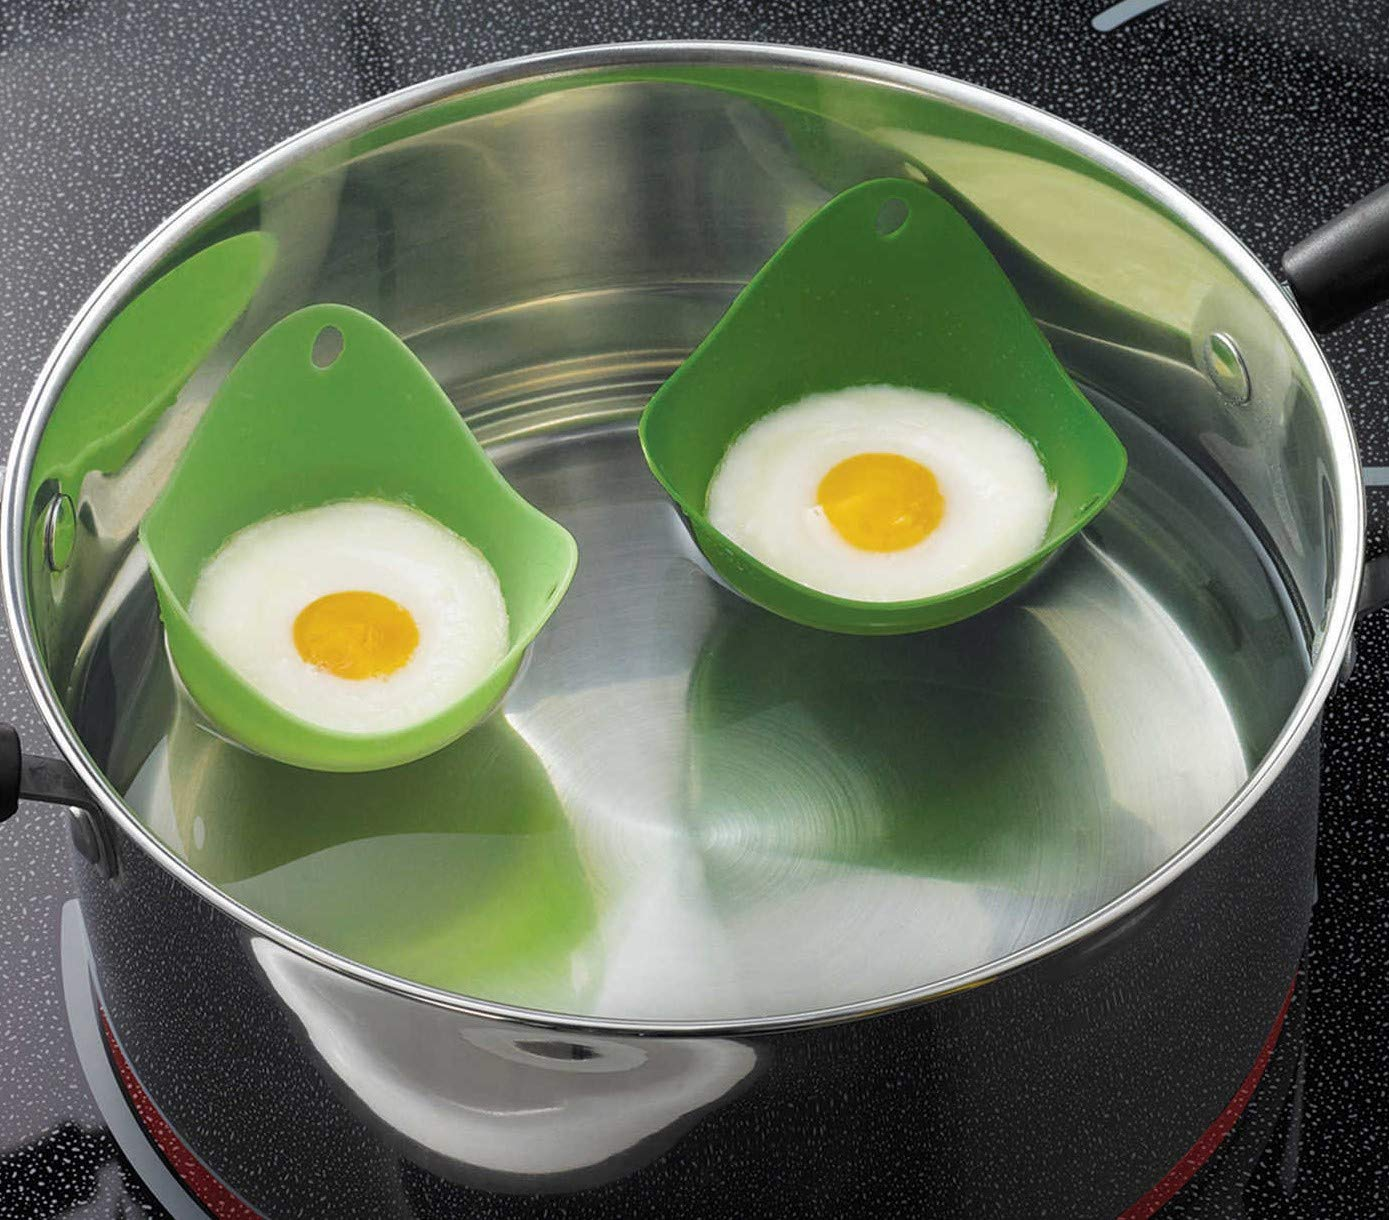 Hard Boiled Egg Cooker Set WITHOUT SHELL —6 Silicon Egg cooker COMES WITH TWO ADDITIONAL SILICONE EGG POACHERS, BPA AND FDA-APPROVED